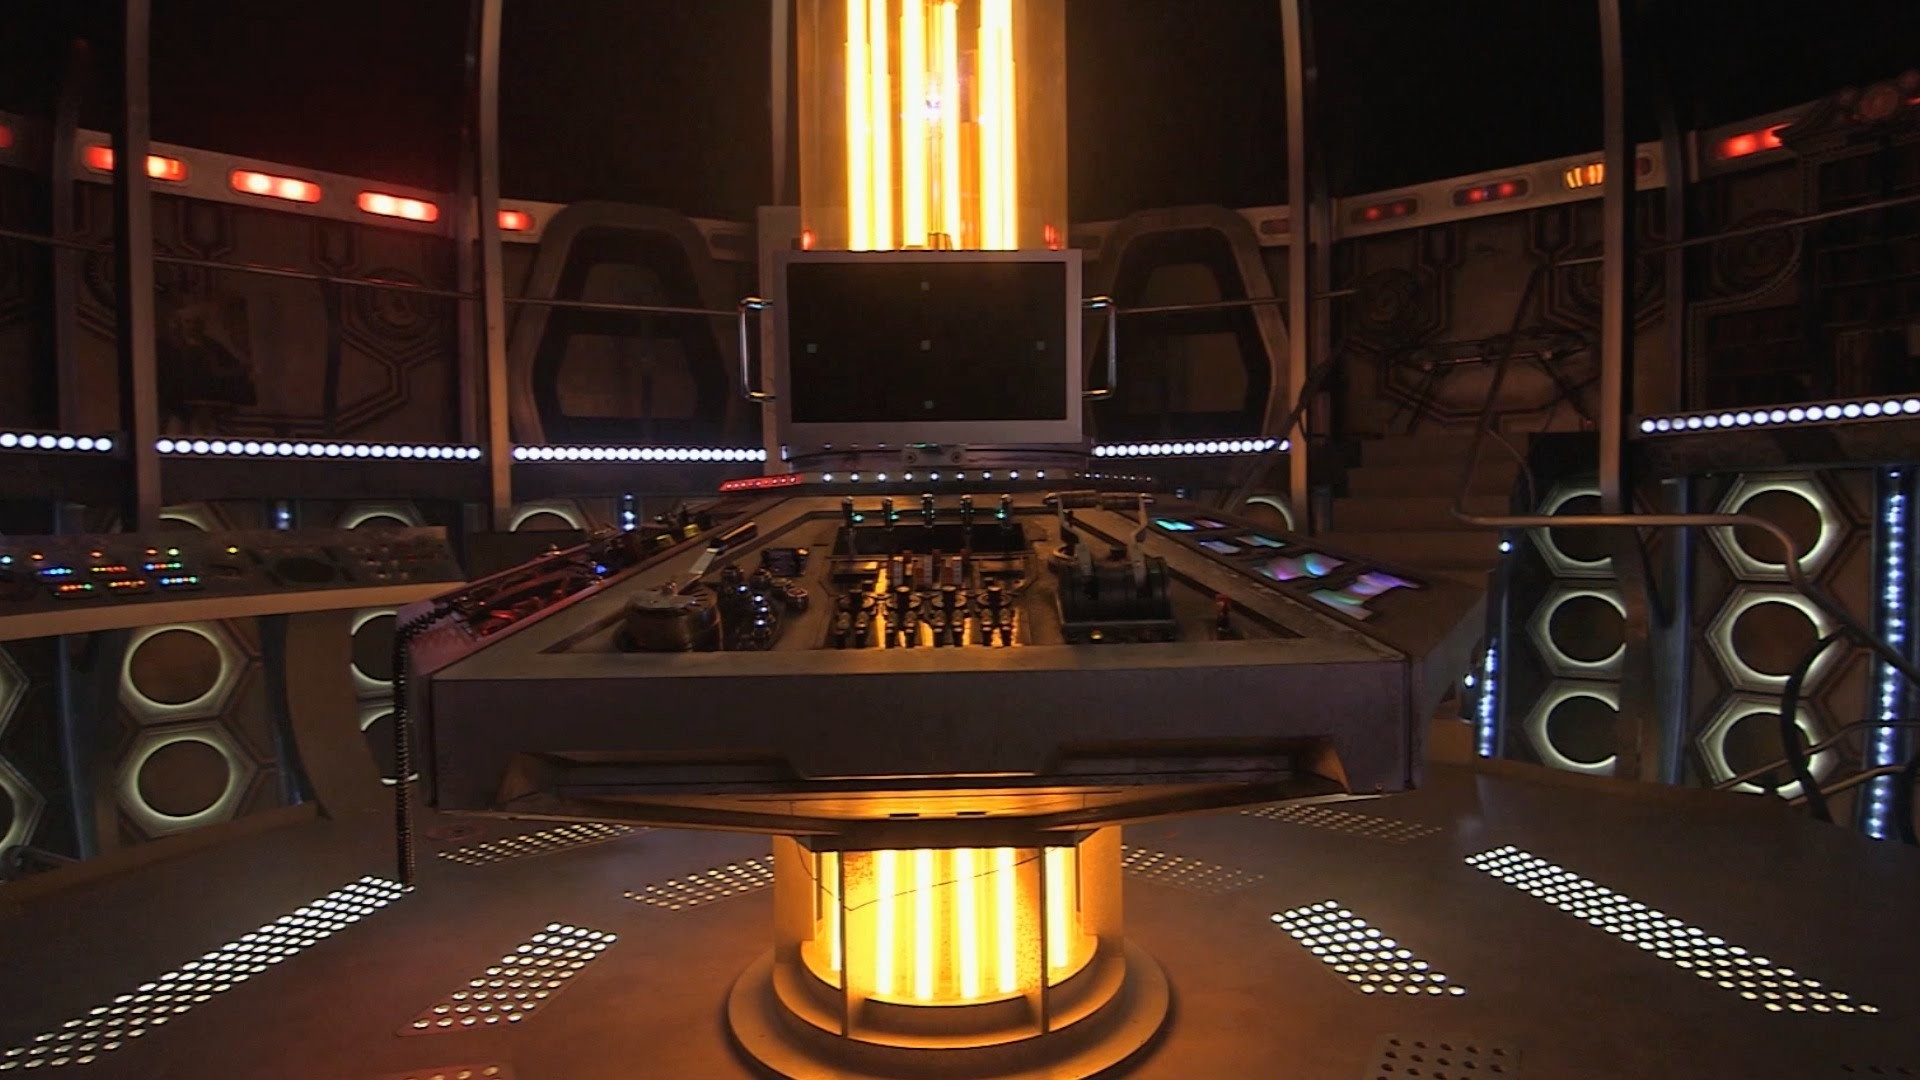 The 12th Doctor's TARDIS – Doctor Who: Series 9 (2015) – BBC One